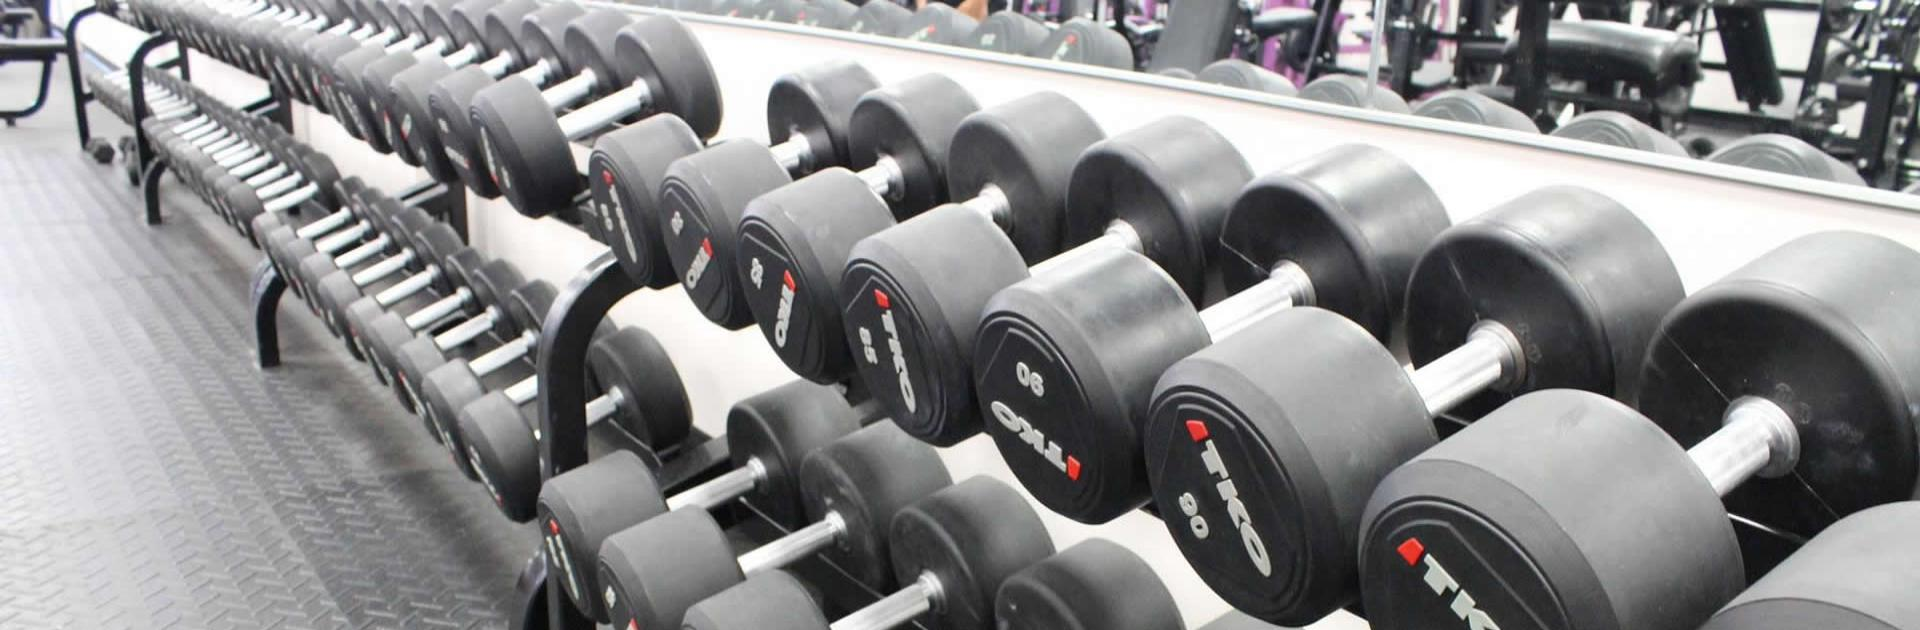 Cape May Fitness Center | Training | Nutrition | Dance